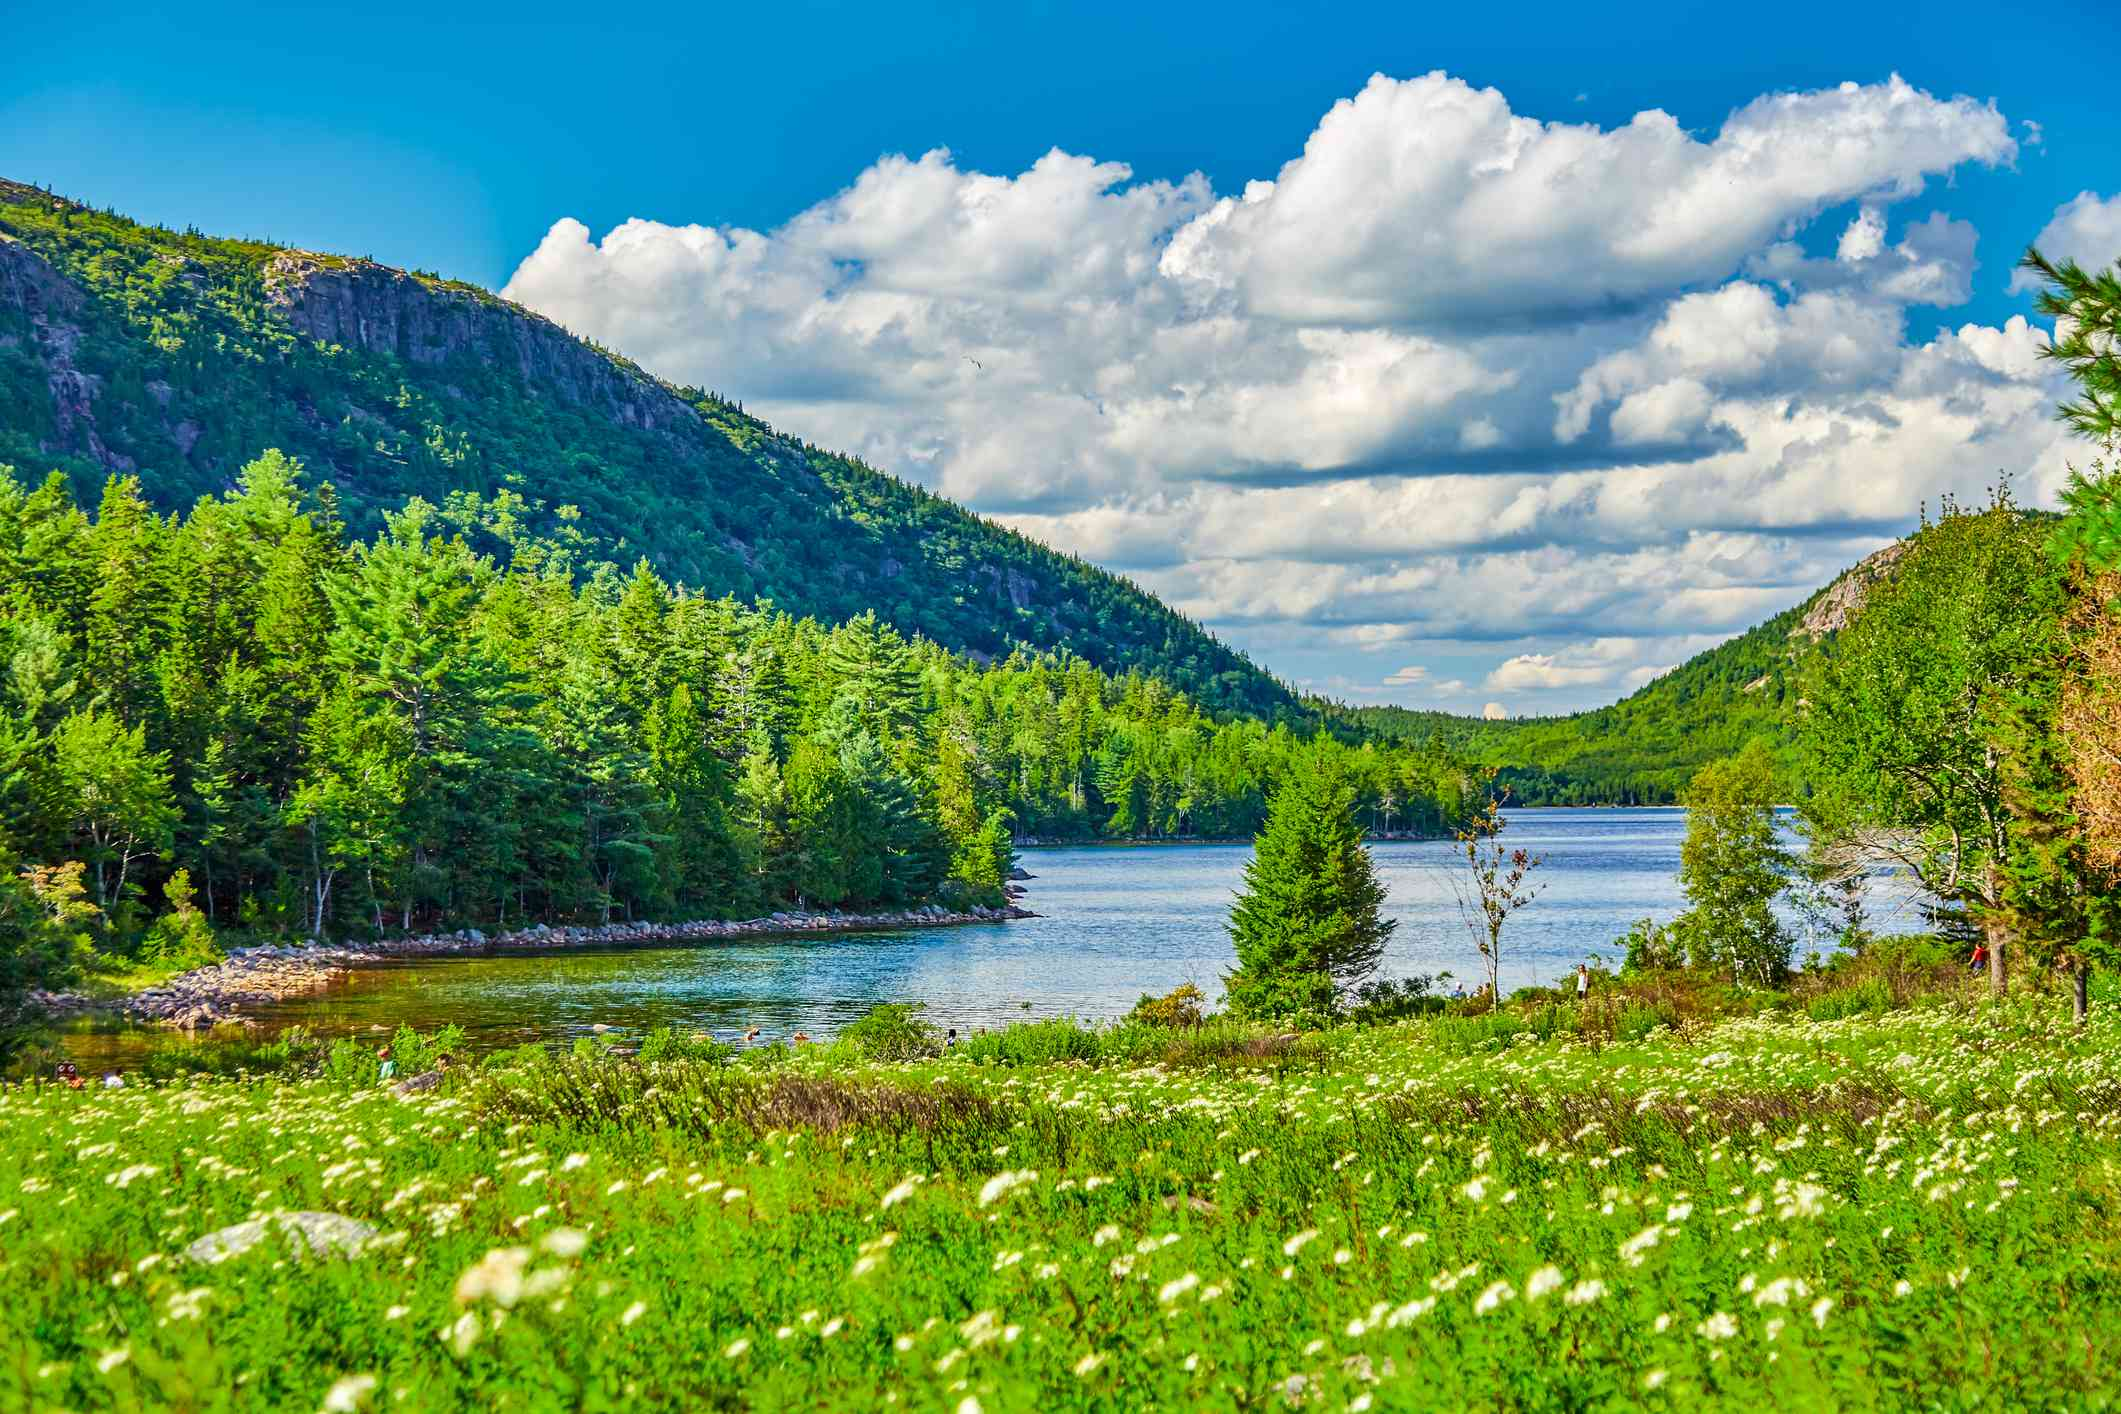 Jordan Pond at Acadia National Park with wildflowers in the foreground, green trees surrounding the lake, and hills in the background under blue skies with white clouds